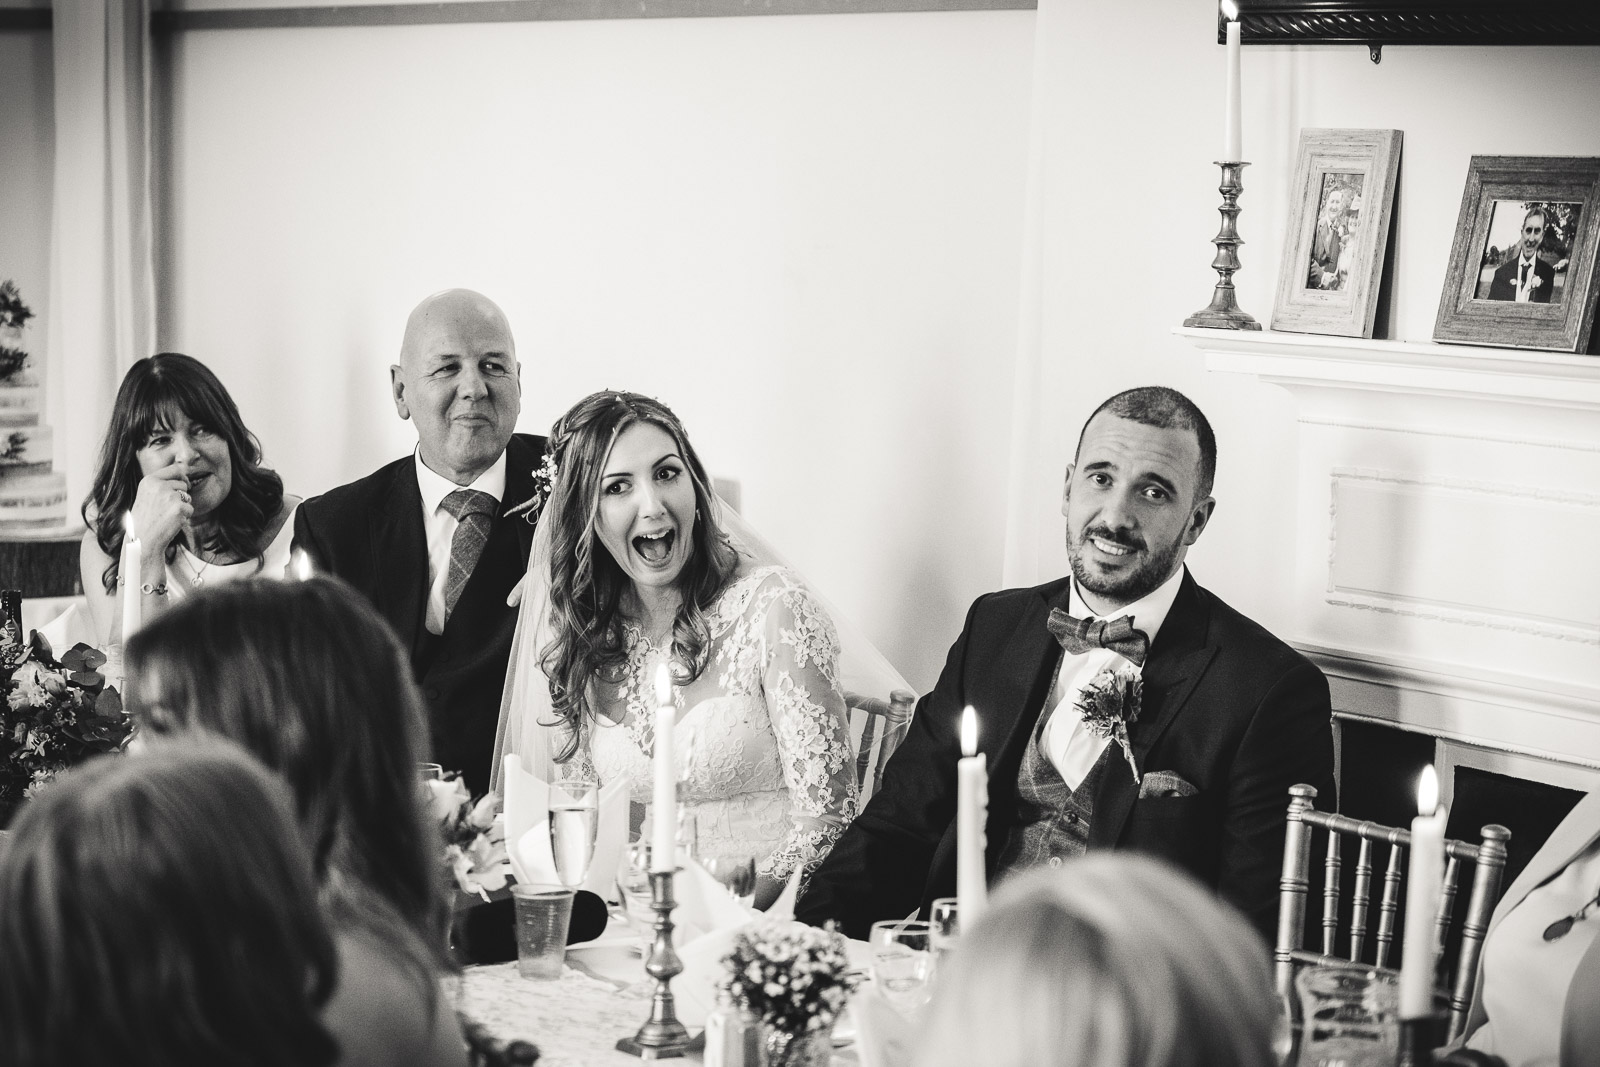 How do deposits and payments work?? - The deposit secures your date and ensures that time is set aside for planning, visits to venues, shooting your wedding and processing of the photos afterwards. The balance is payable one month prior to the big day.